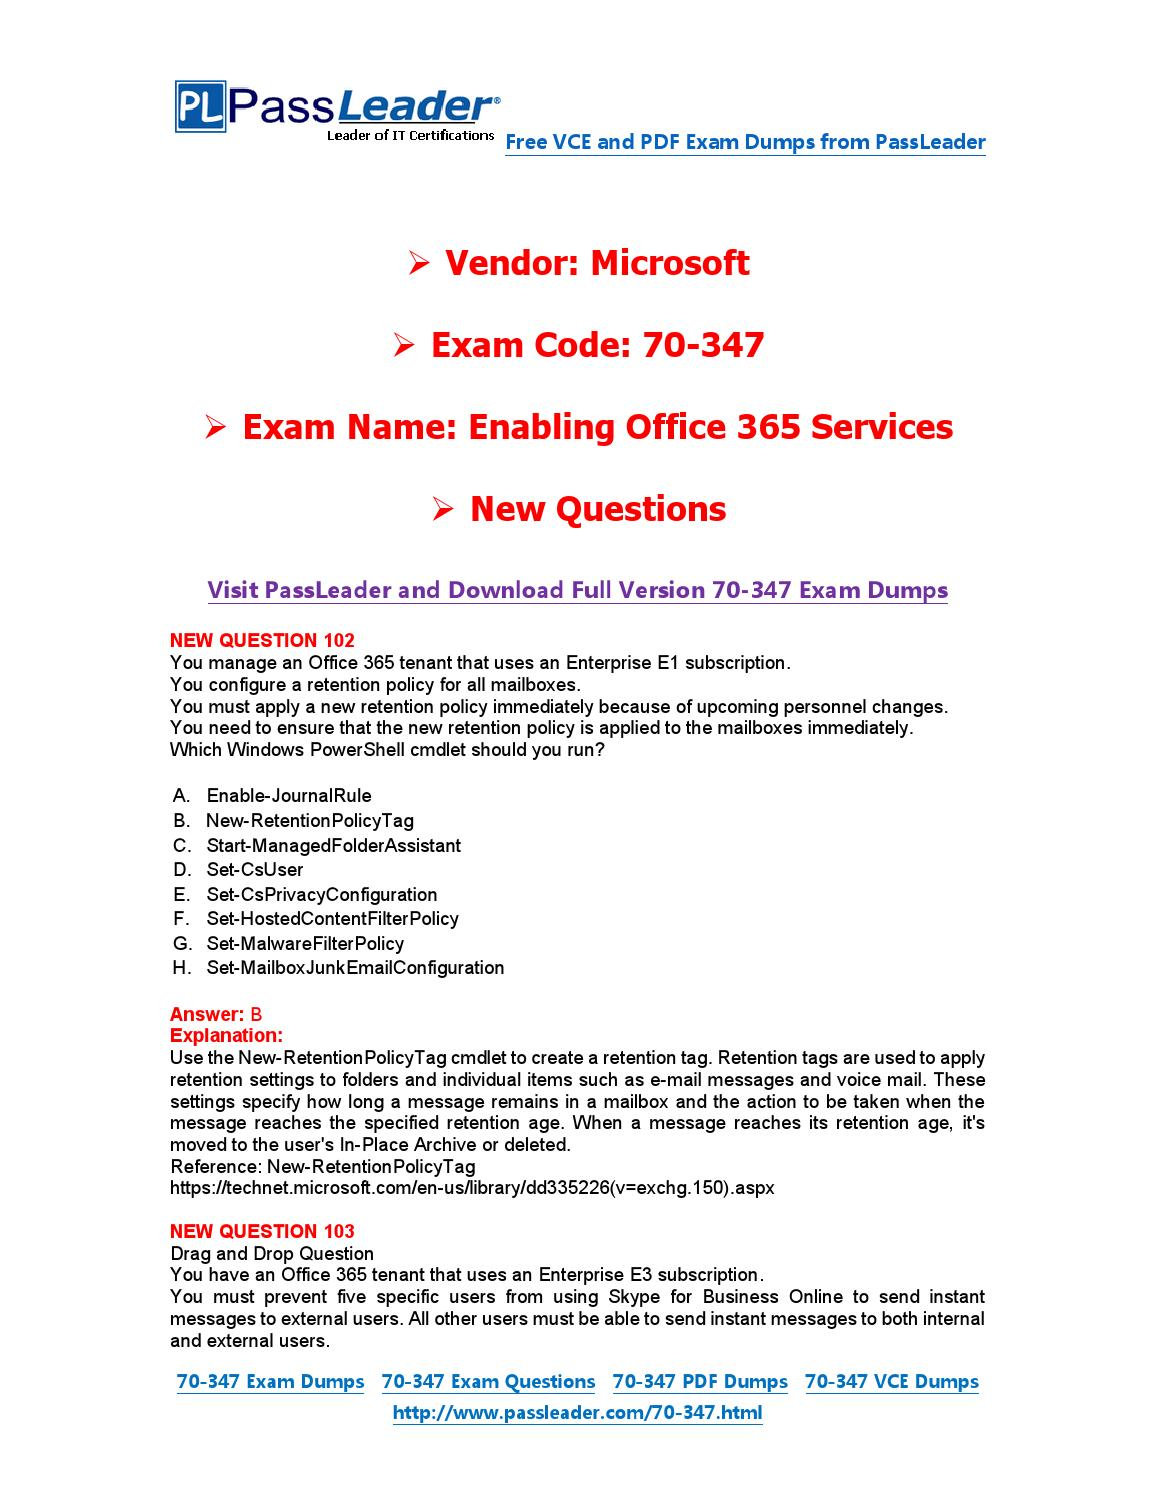 Jan-2016] New 70-347 Exam Dumps For Free (VCE and PDF) by Exam Dumps